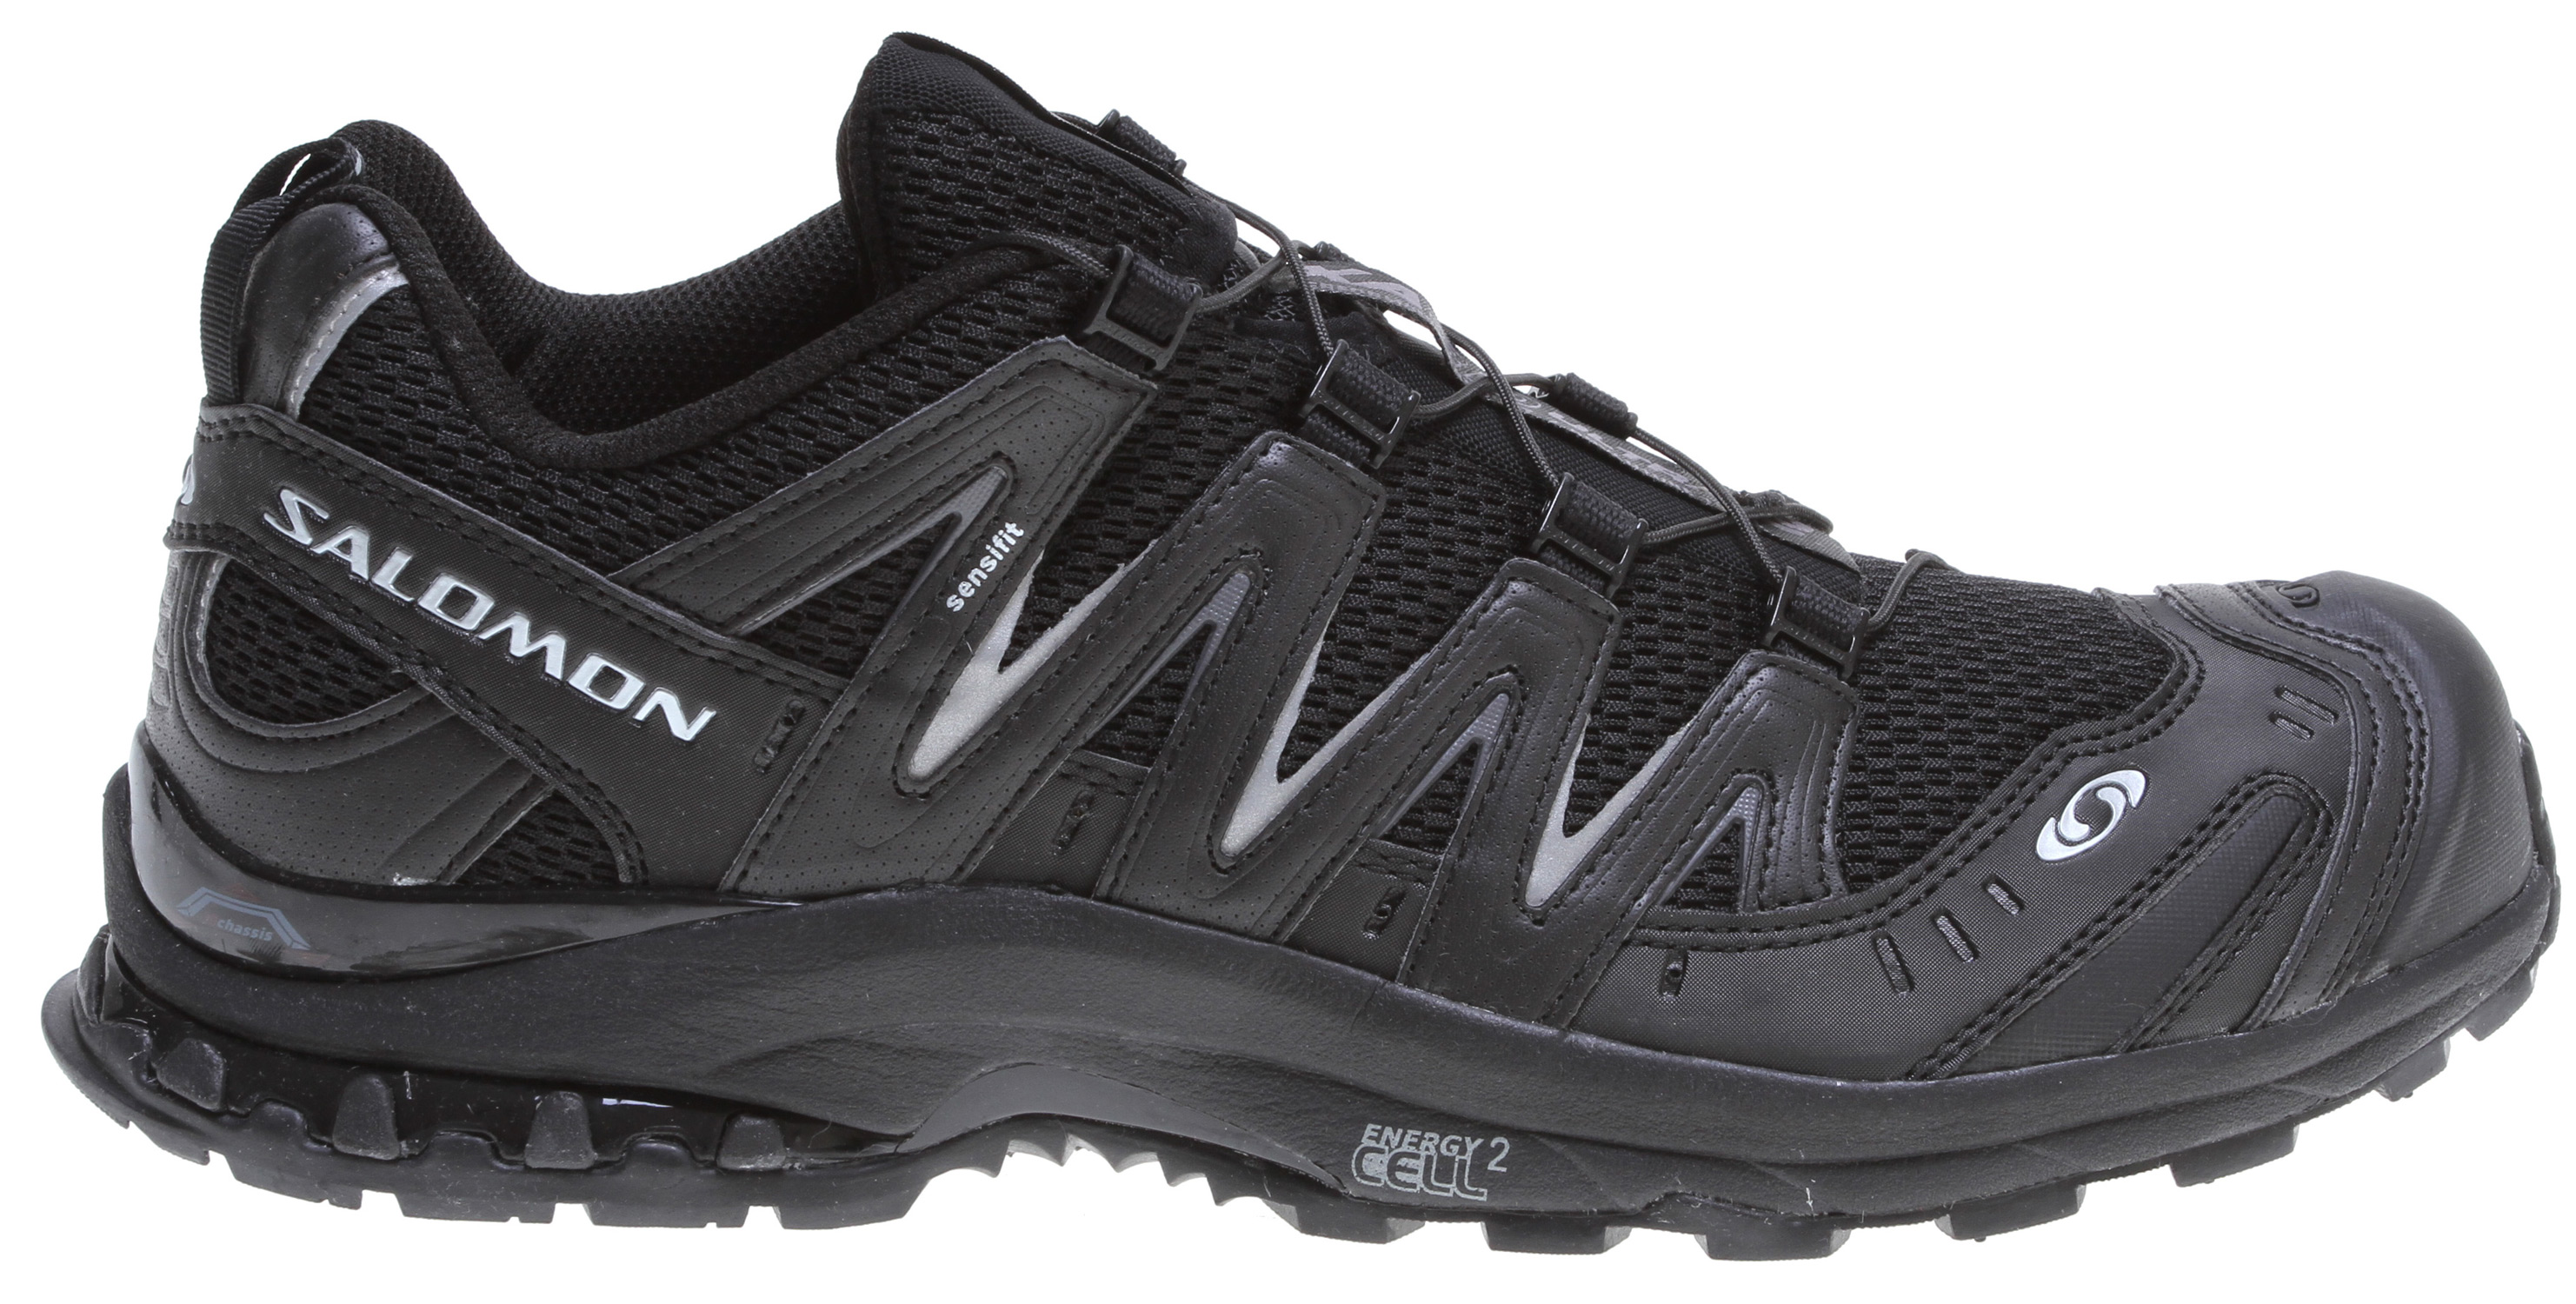 Camp and Hike Light, durable, and stable on the most demanding trails, the XA Pro ED Ultra 2 has a streamlined profile, improved durability and aggressive lugged outsole geometry.Key Features of the Salomon XA Pro 3D Ultra 2 Hiking Shoes: Weight: 360G / 12.7 oz (size 7), 376G / 13.3 oz (size 9) Quick drying breathable mesh Asymmetrical lacing Sensifit Lace Pocket Protective Rubber toe cap Mud guard Quicklace Outsole: Non marking running contagrip Chassis: 3D advance Chassis Sock Liner: Molded EVA, EVA Shaped footbed, Ortholite Midsole: Dual density EVA, Molded EVA, Energy cell 2, Pronation control Midsole Height: 11mm / 21mm - $98.95